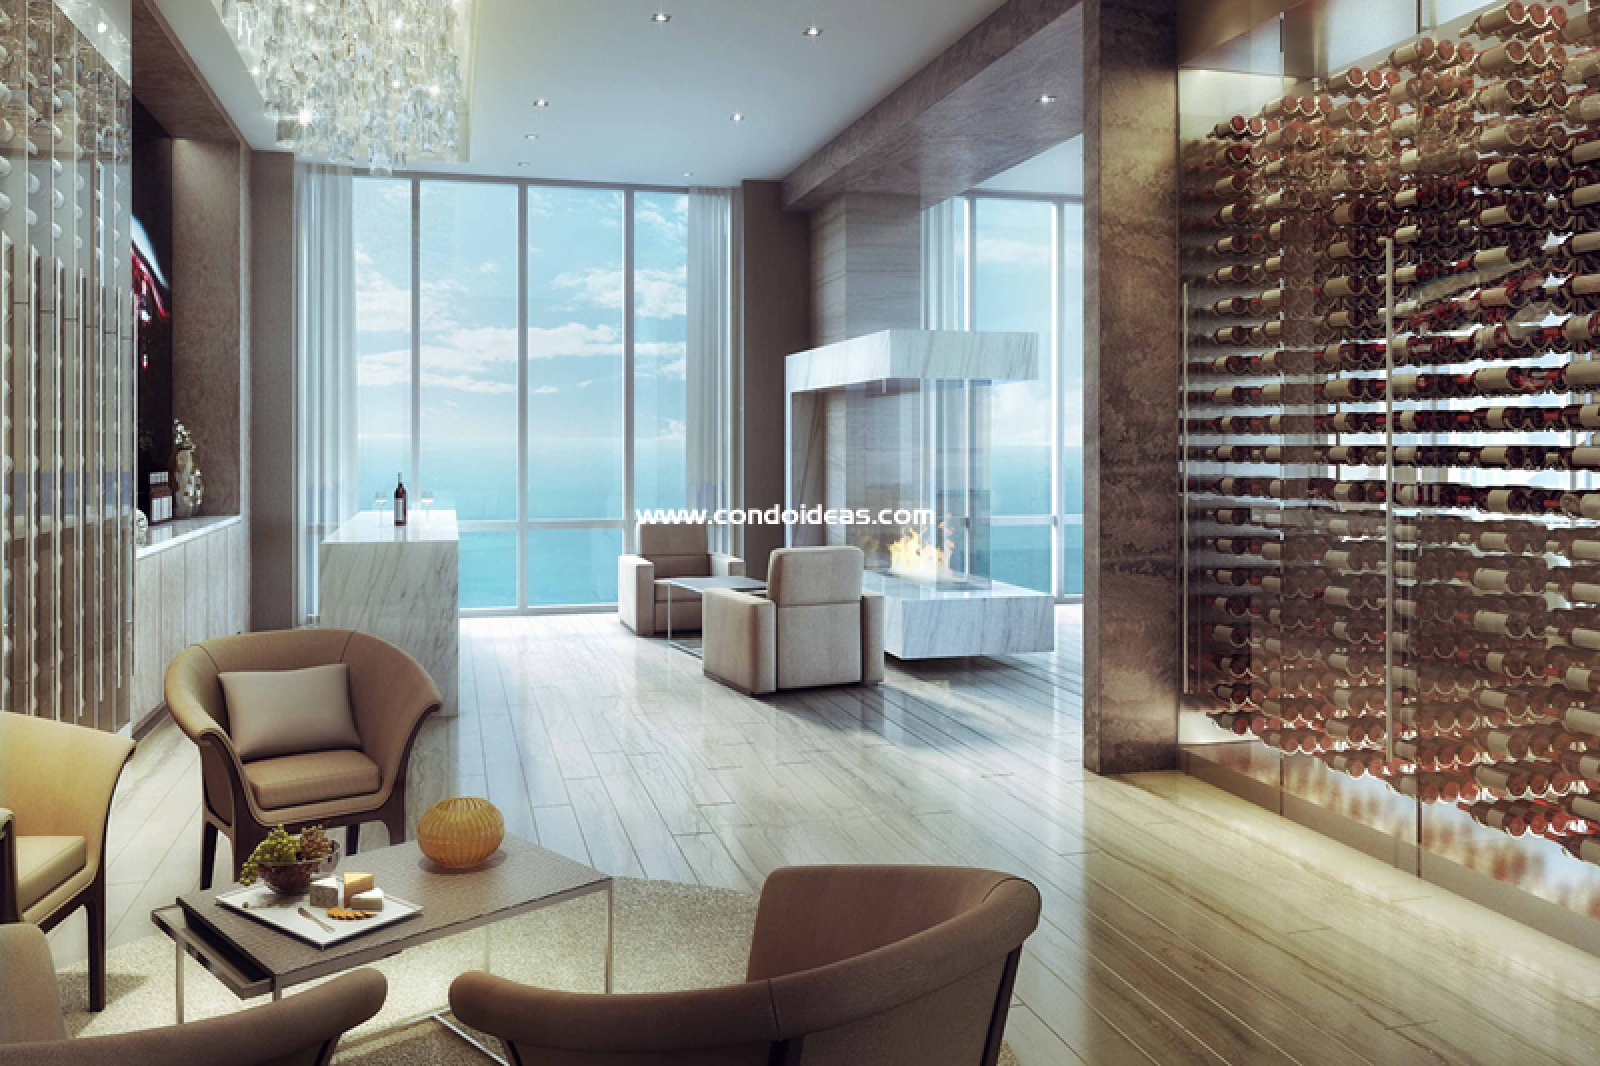 The Mansions at Acqualina condo